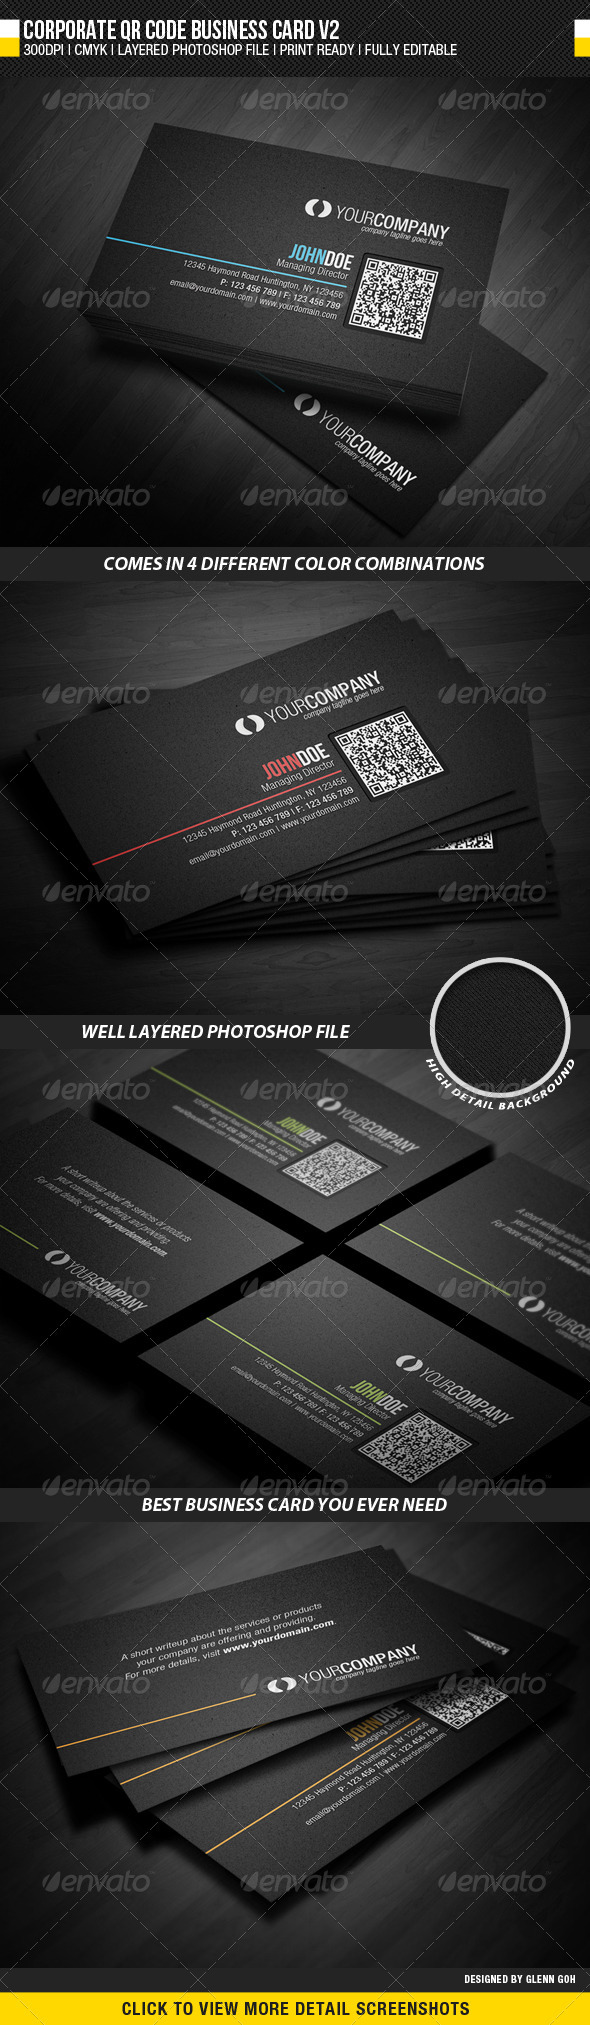 GraphicRiver Corporate QR Code Business Card V2 2283604